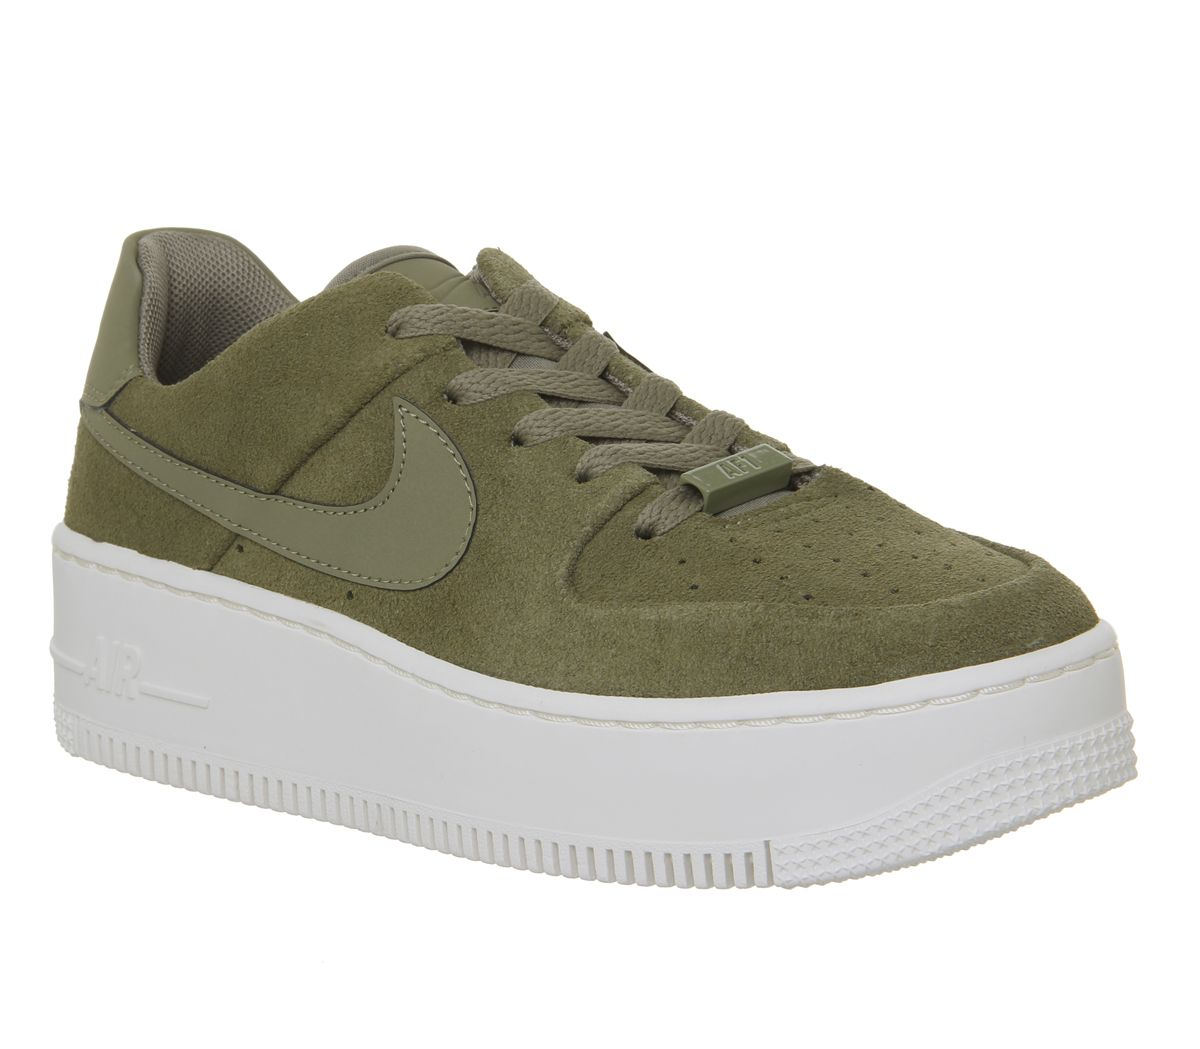 922aa4febf572a Nike Air Force 1 Sage Trainers Trooper Phantom - Hers trainers